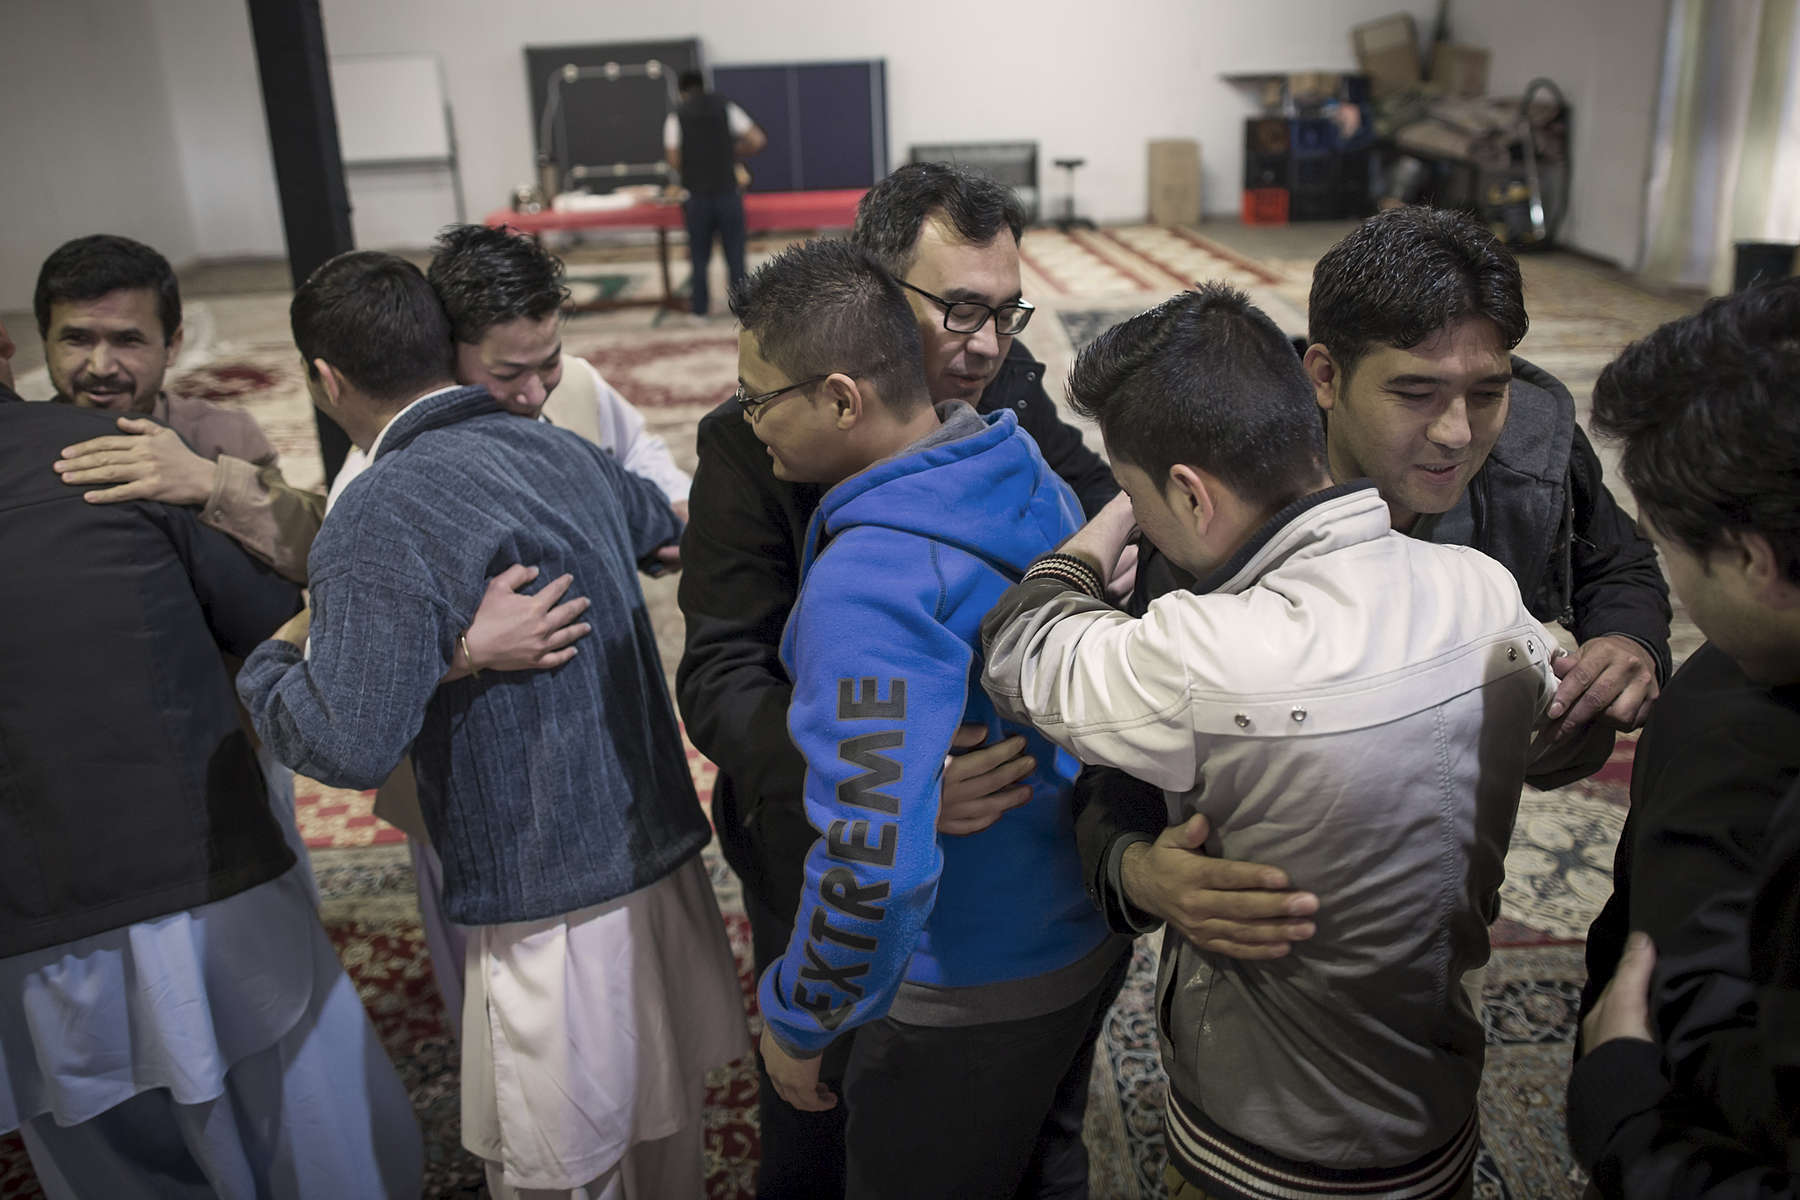 At the Imam Ali Centre in Kemps Creek in Greater Sydney members of the Hazara community embrace each other after the Eid Al-Fitr prayers which marks the end of the holy month of Ramadan. The community at Imam Ali Centre are Hazaras who have grown up in Quetta, Pakistan. Many members find it easier to understand their own Sheikhs sermons and lectures as they\'ve similarly lived  in Quetta and speak Dari with the same accent.